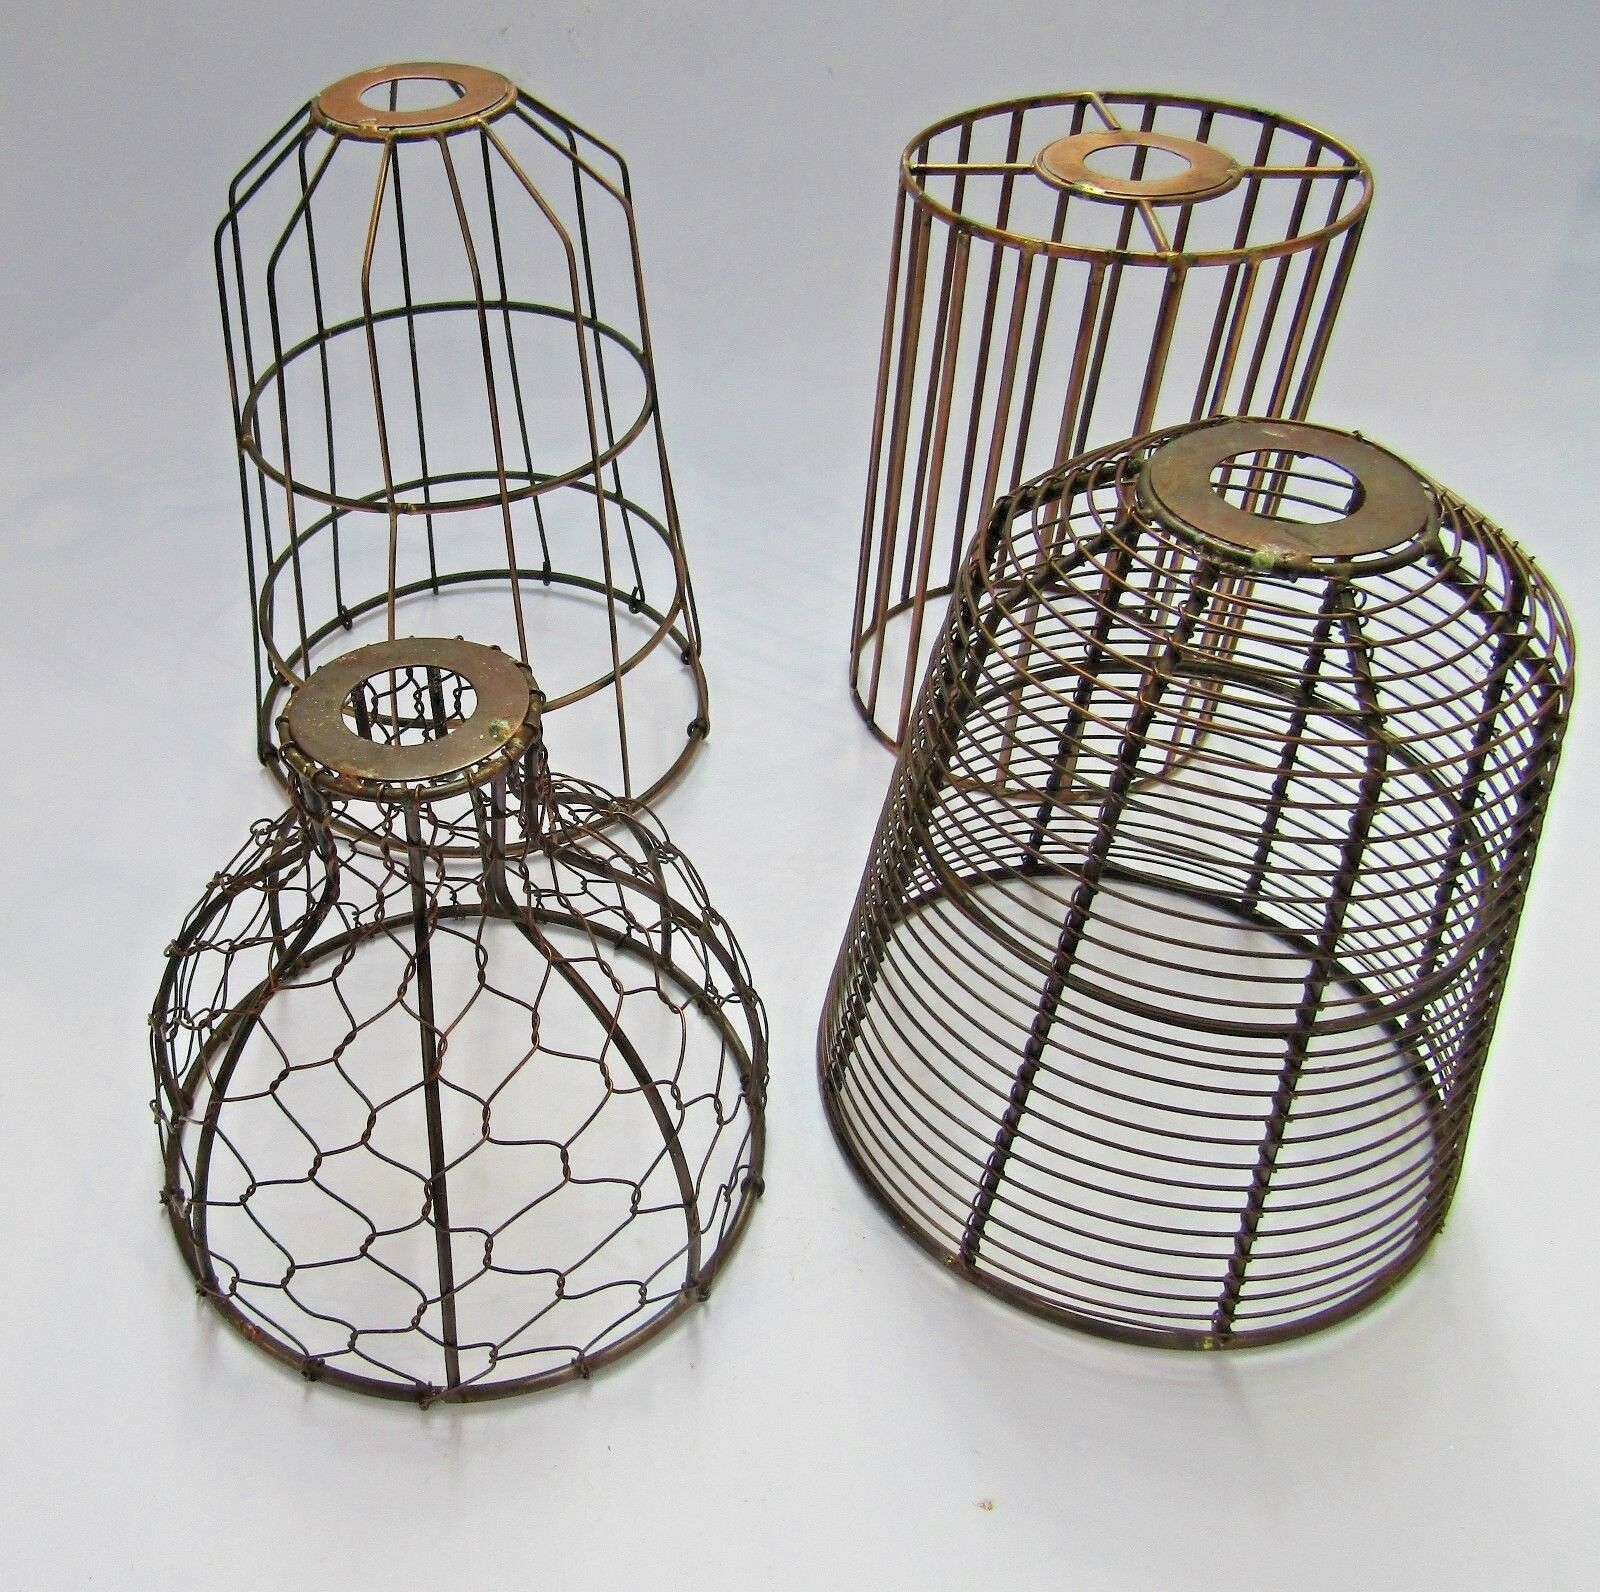 WIRE LAMPSHADE INDUSTRIAL rustic Vintage Retro Old ceiling pendant ...